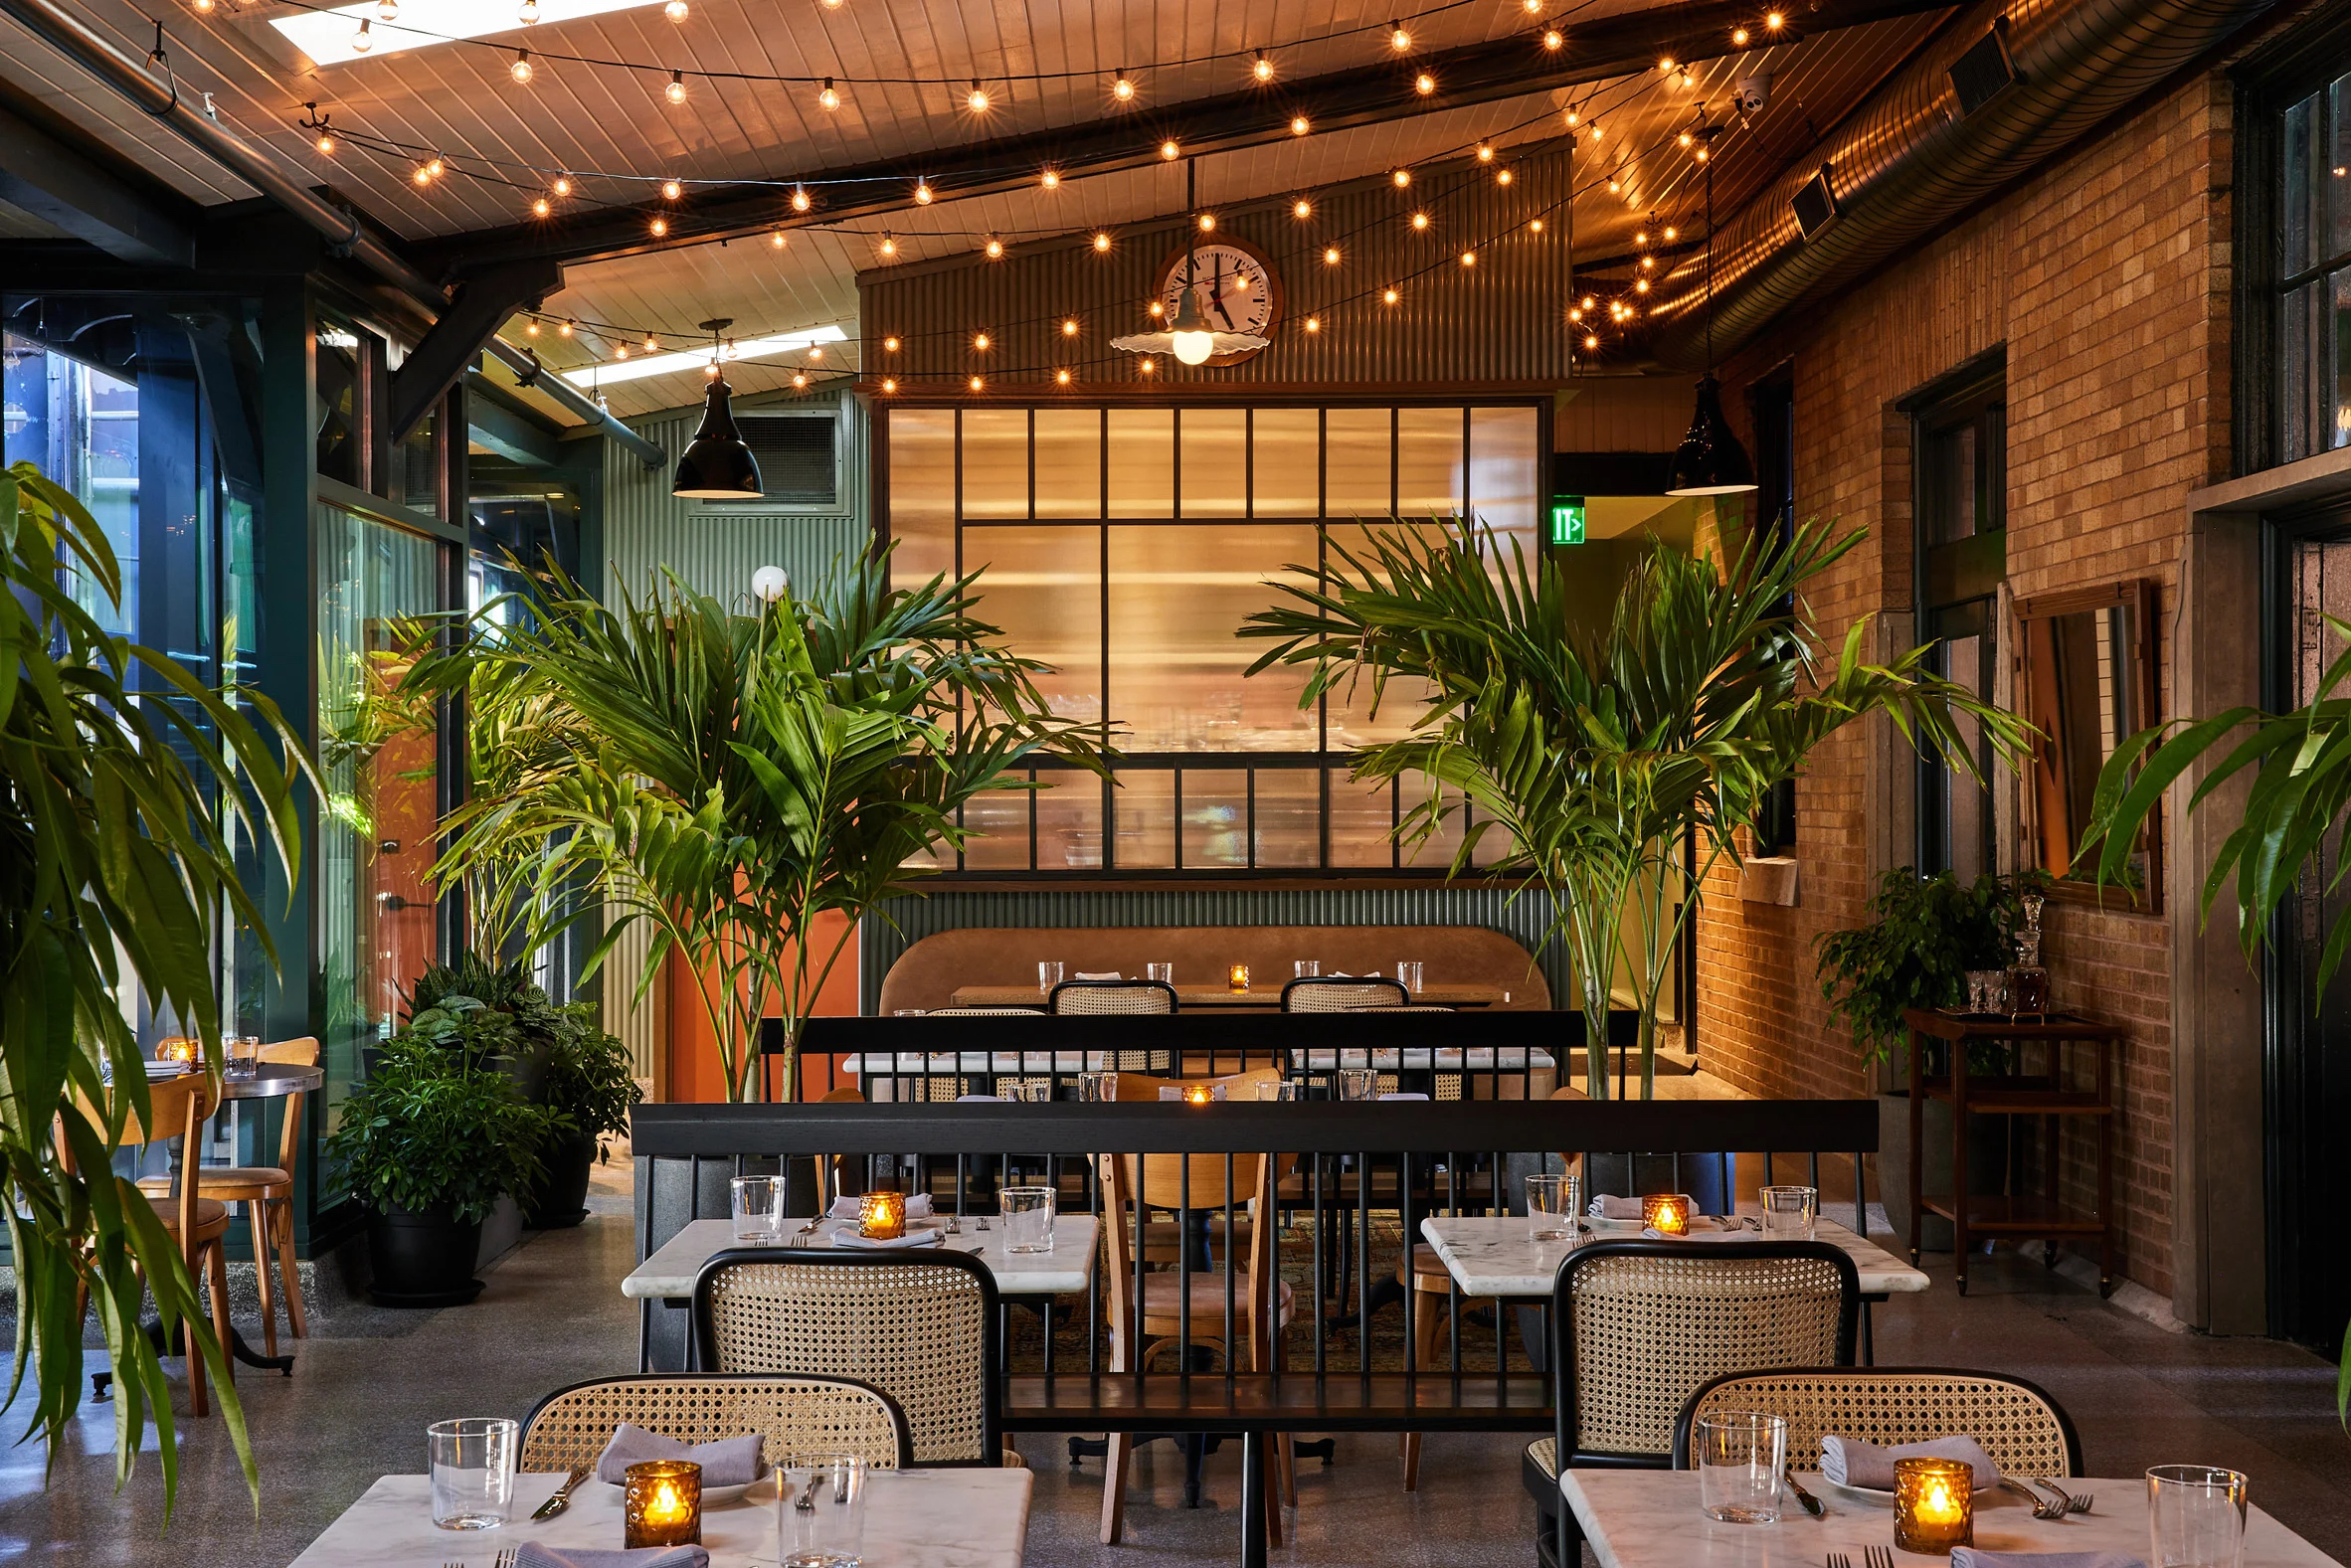 The old train platform is now an informal patio area with string lights and giant palms, and a decommissioned train carriage